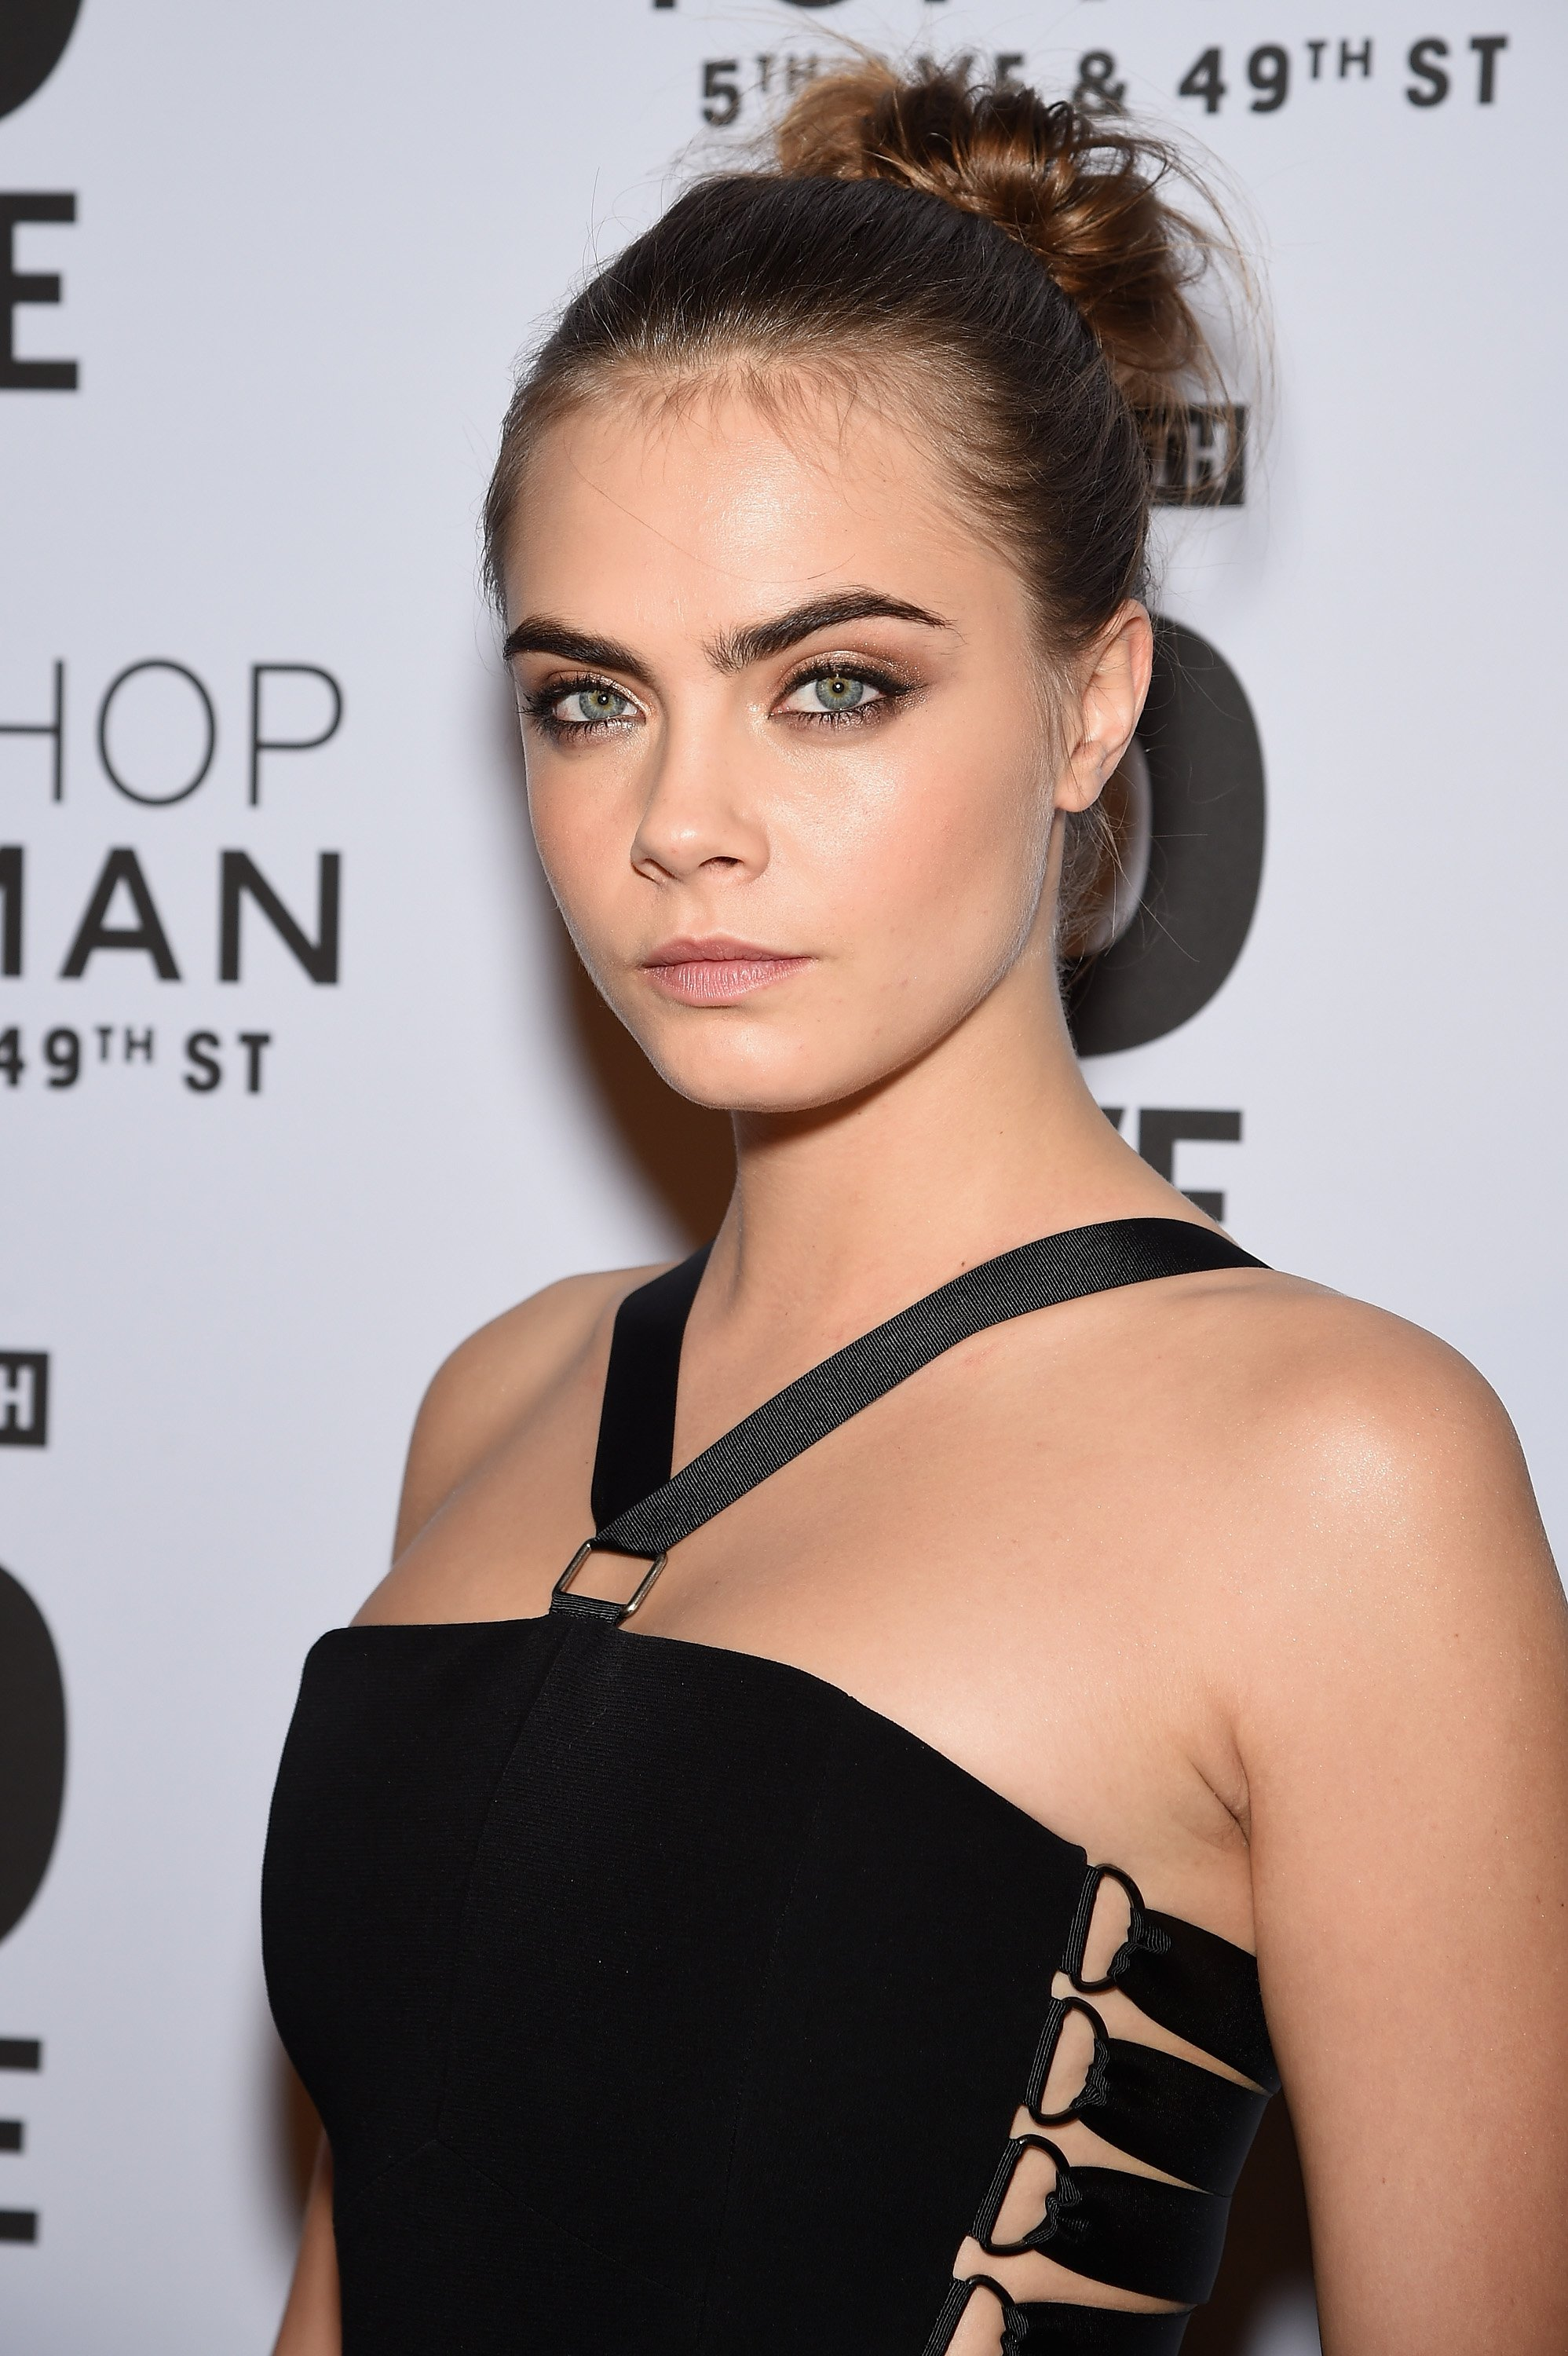 Model Cara Delevingne attends the Topshop Topman New York City flagship opening dinner